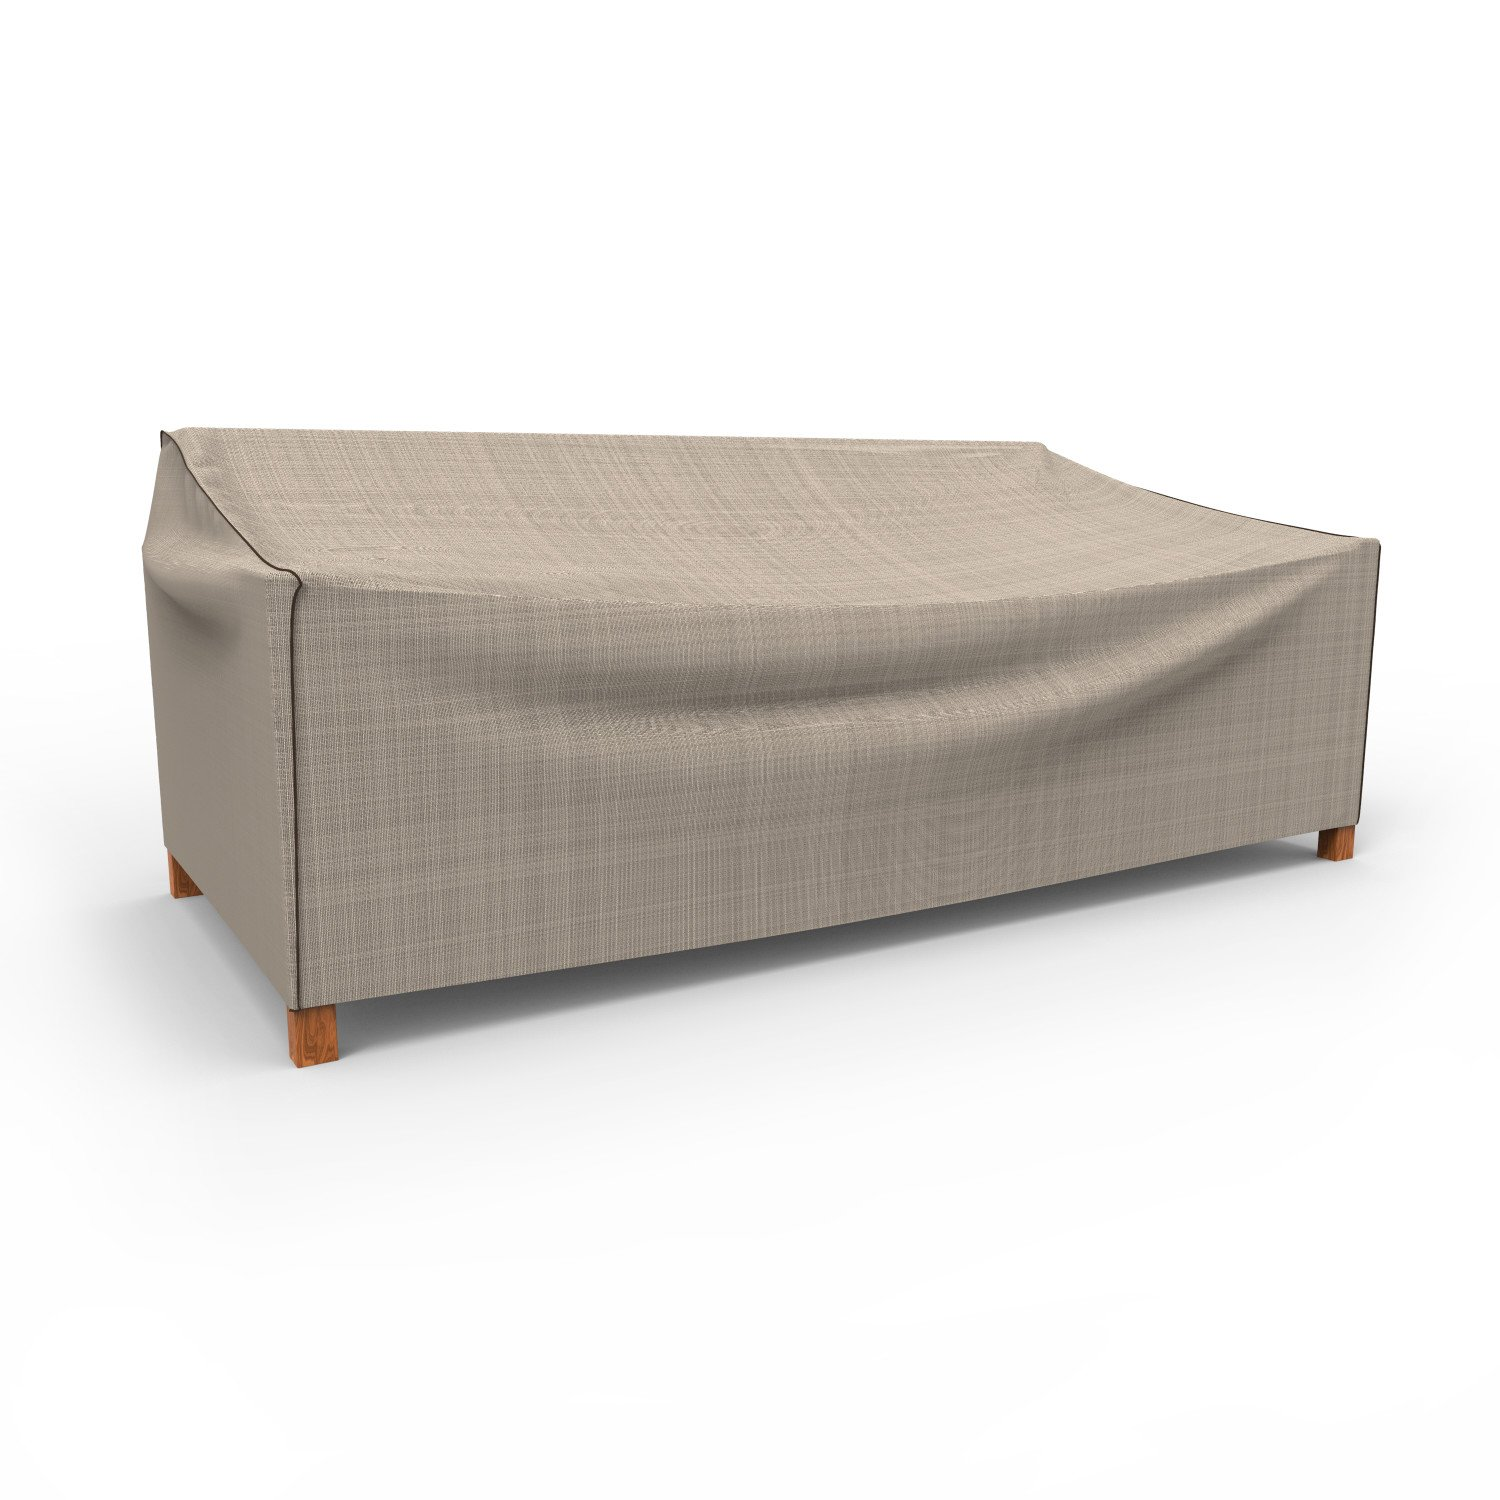 Budge English Garden Outdoor Patio Sofa Cover, Extra Large(Tan Tweed)